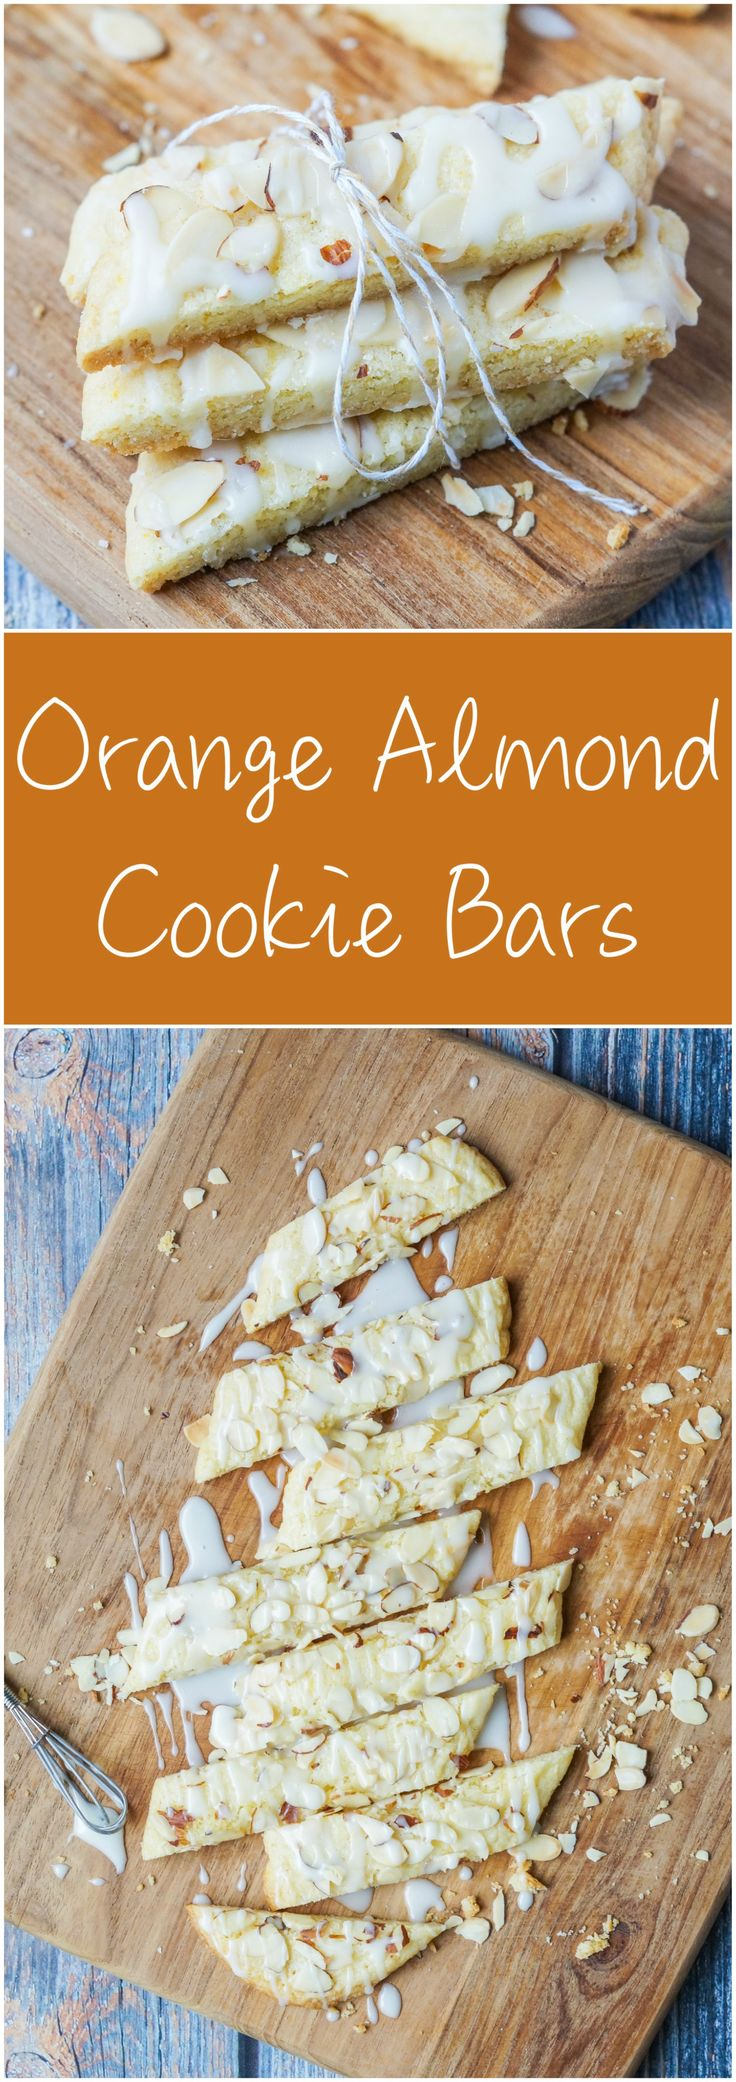 Recipe for Orange Almond Cookie Bars- orange zest and almond spiced thin cookie bars topped with sliced almonds and an orange almond drizzle